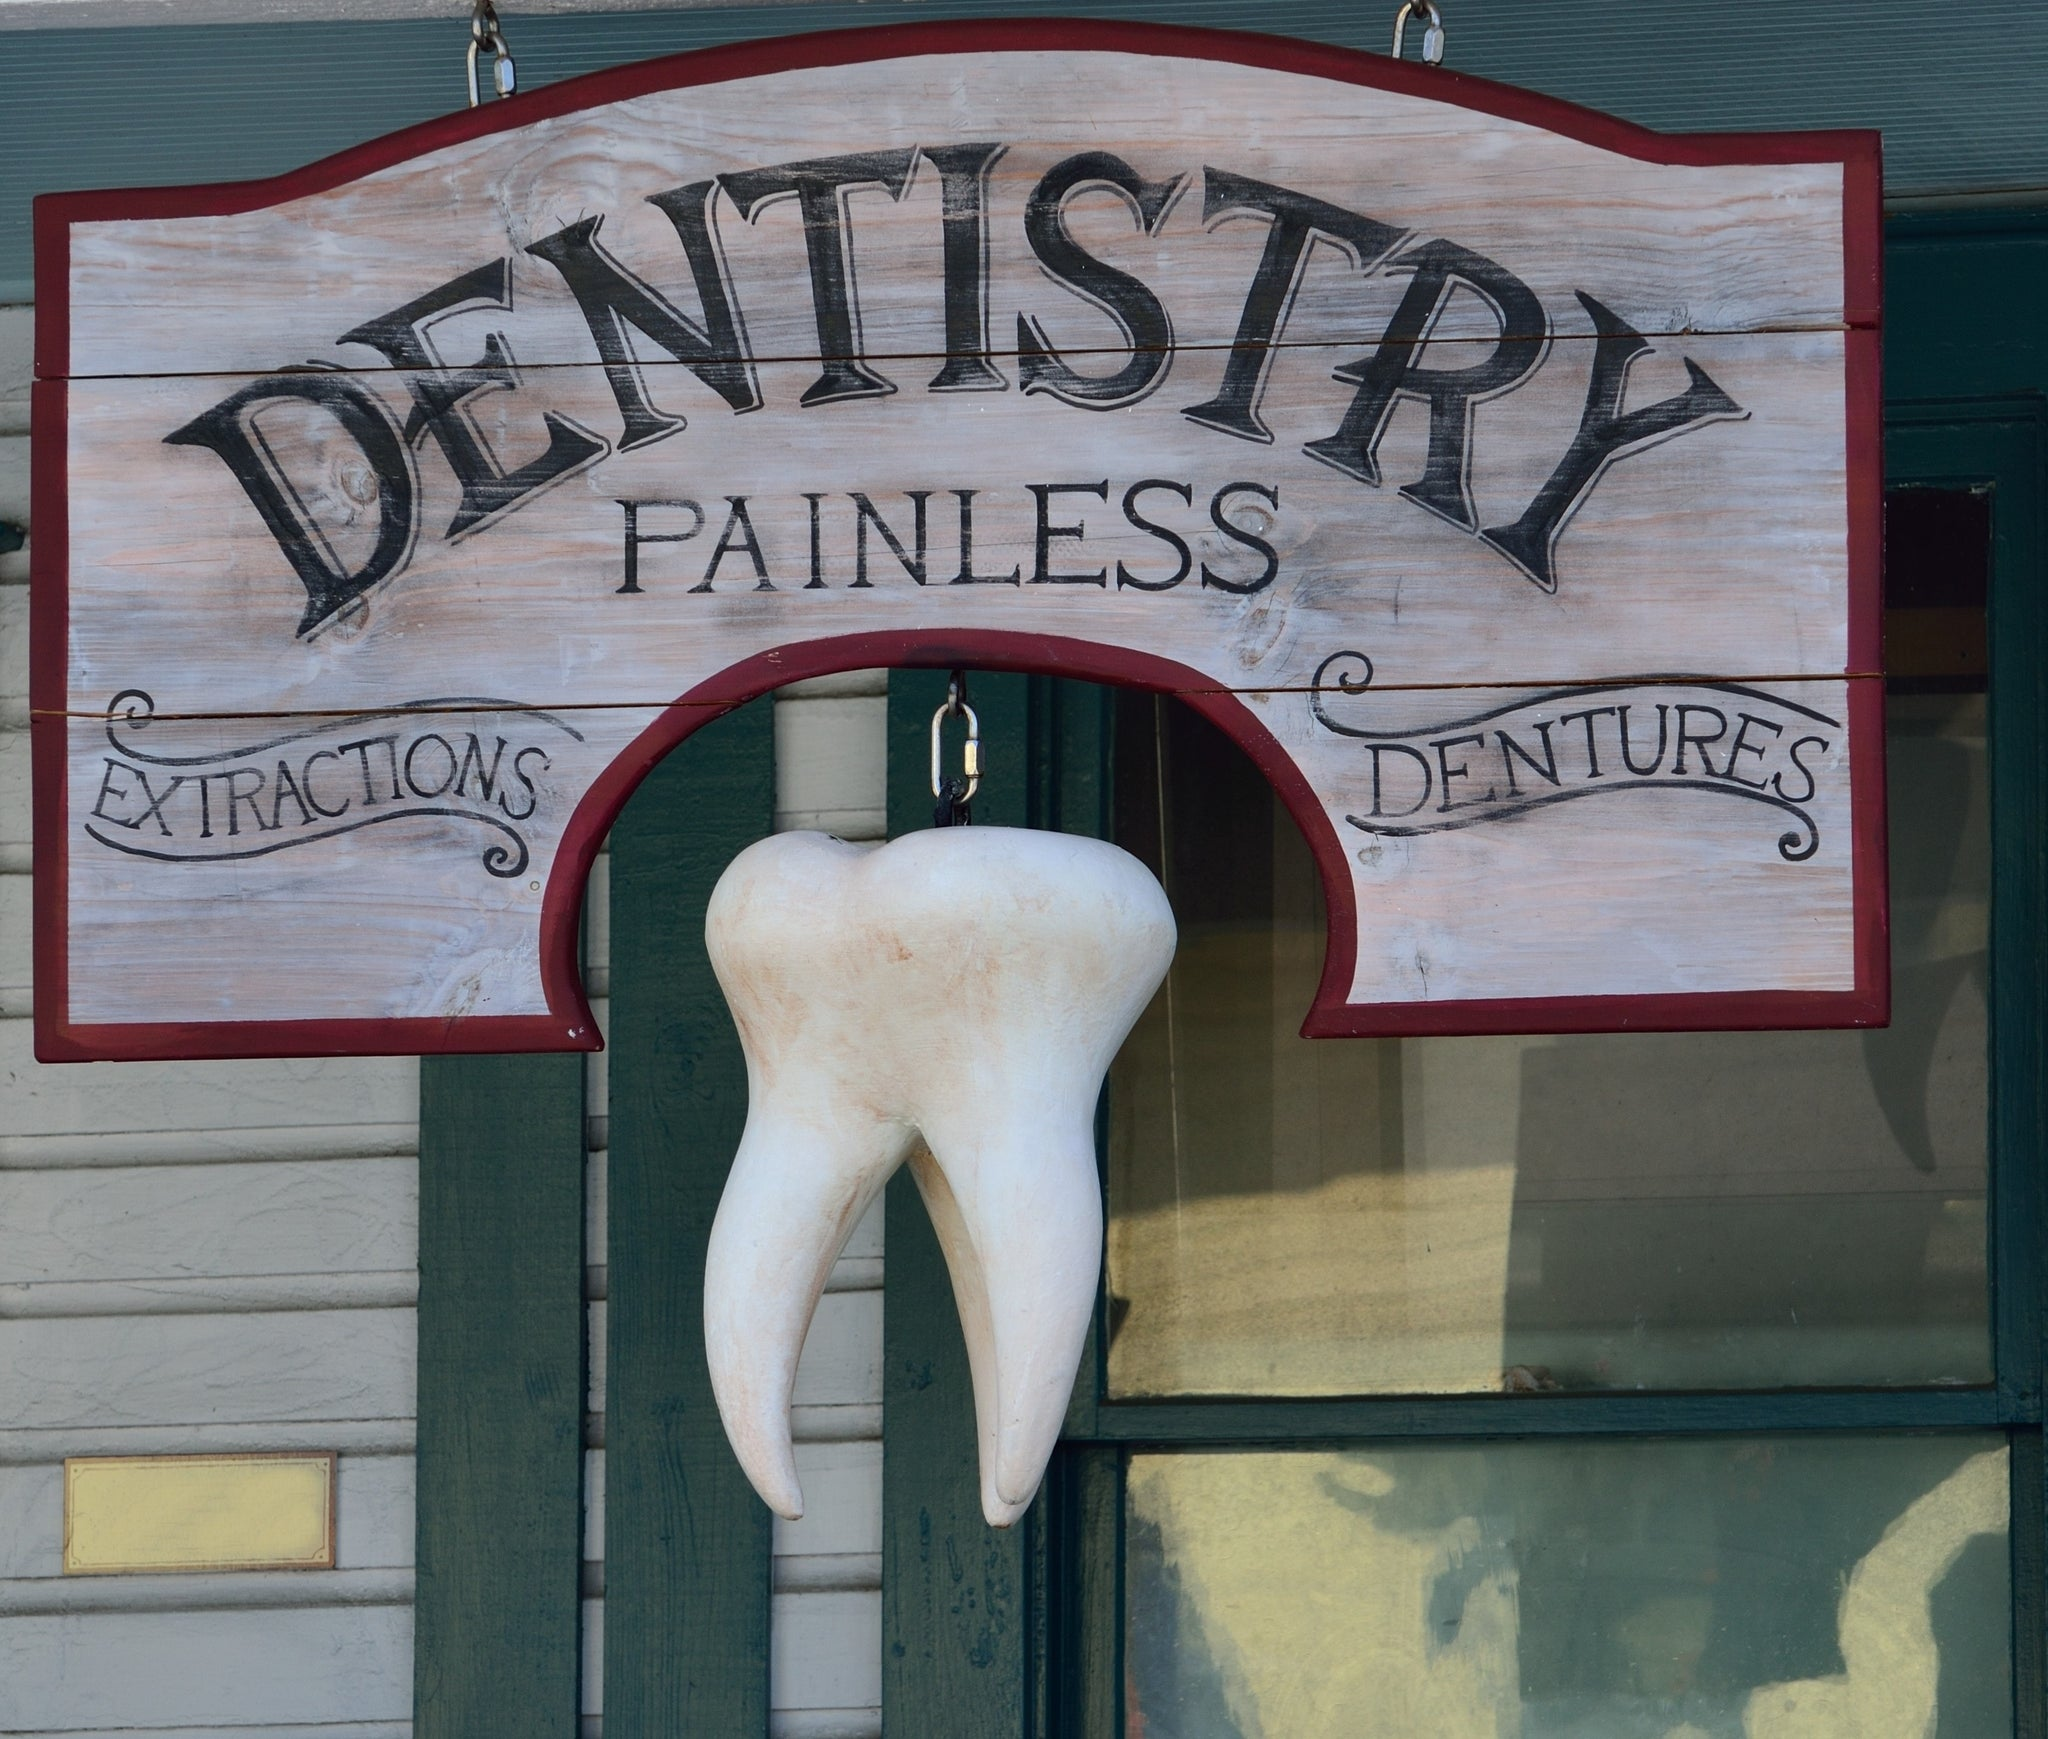 Dental clinic sign with a giant tooth below it, for Autobrush